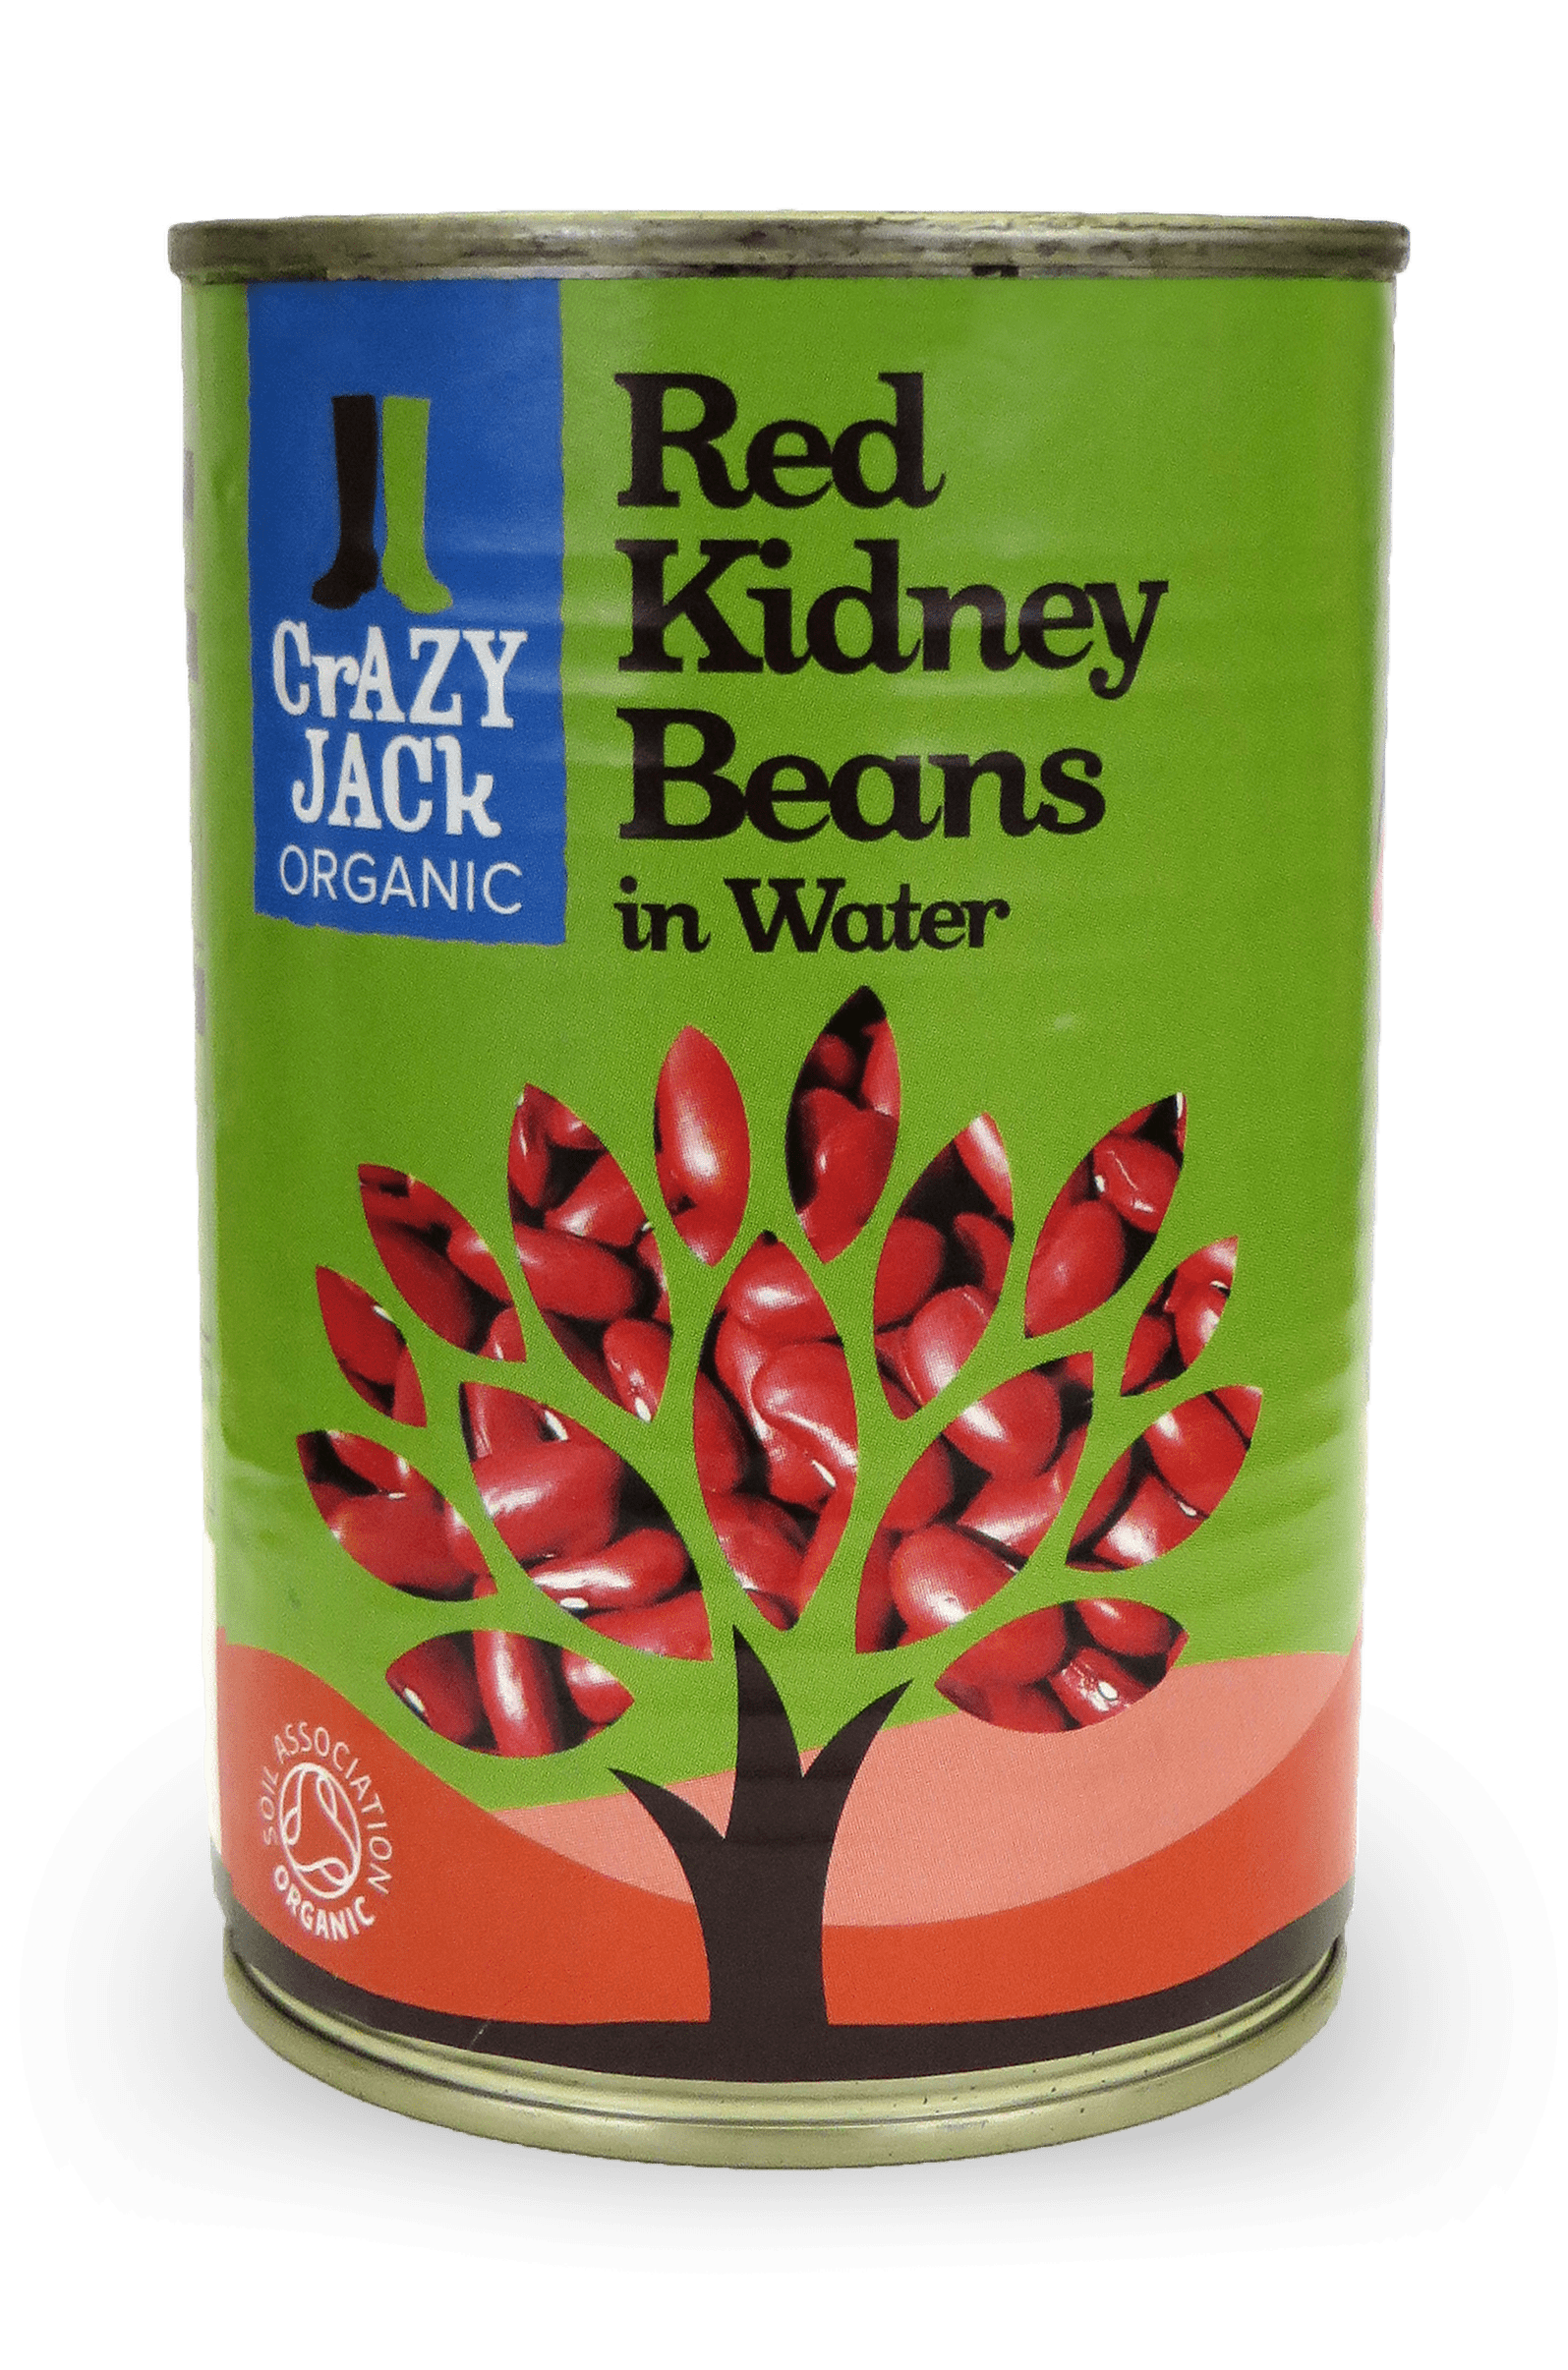 A tin of organic red kidney beans in water